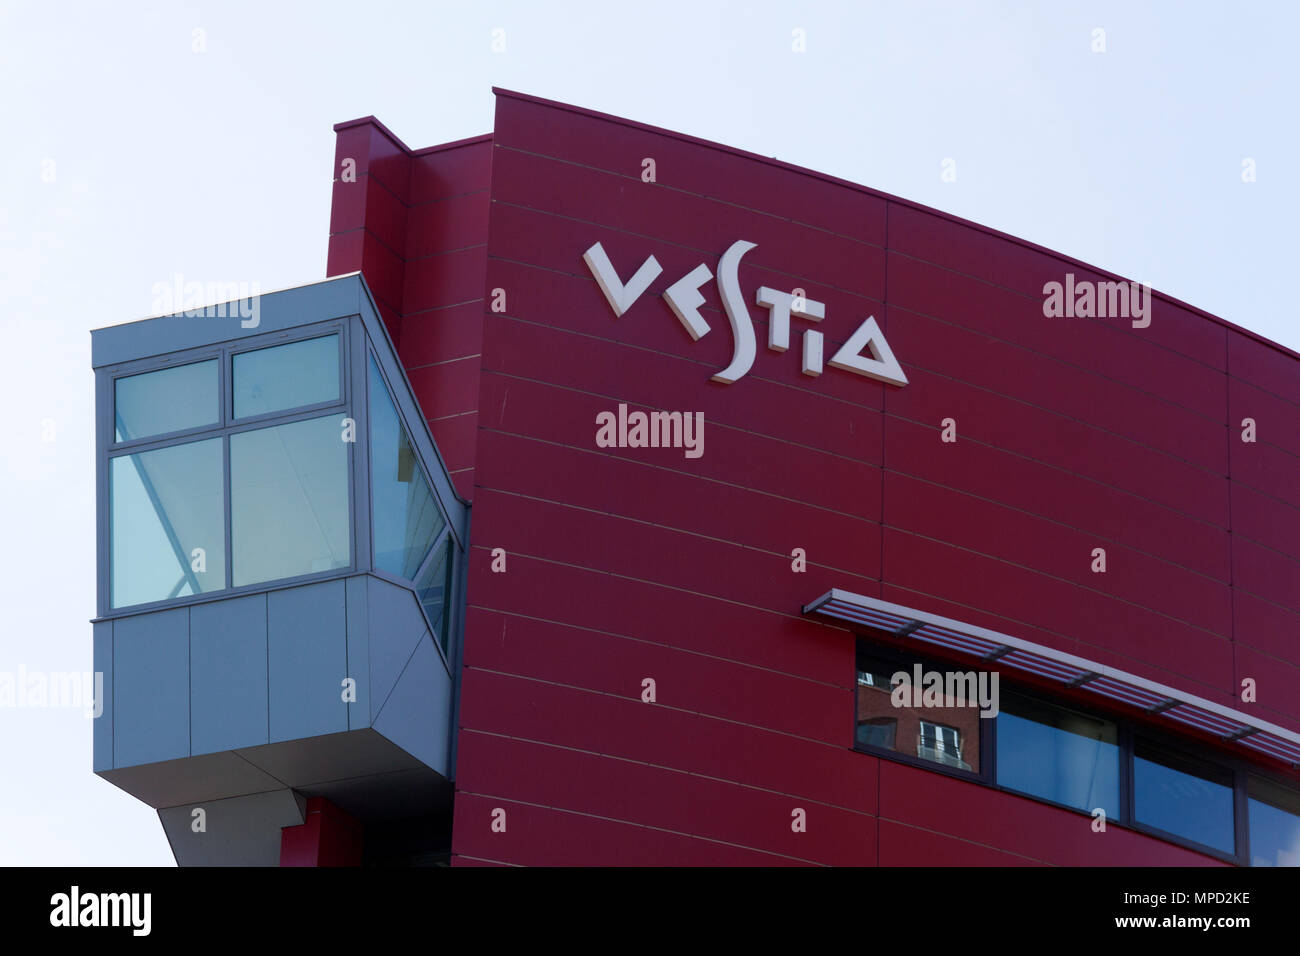 the hague , Netherlands-august 6, 2015: Vestia is a large Dutch housing association that rent houses to people. this office is located in The Hague Stock Photo